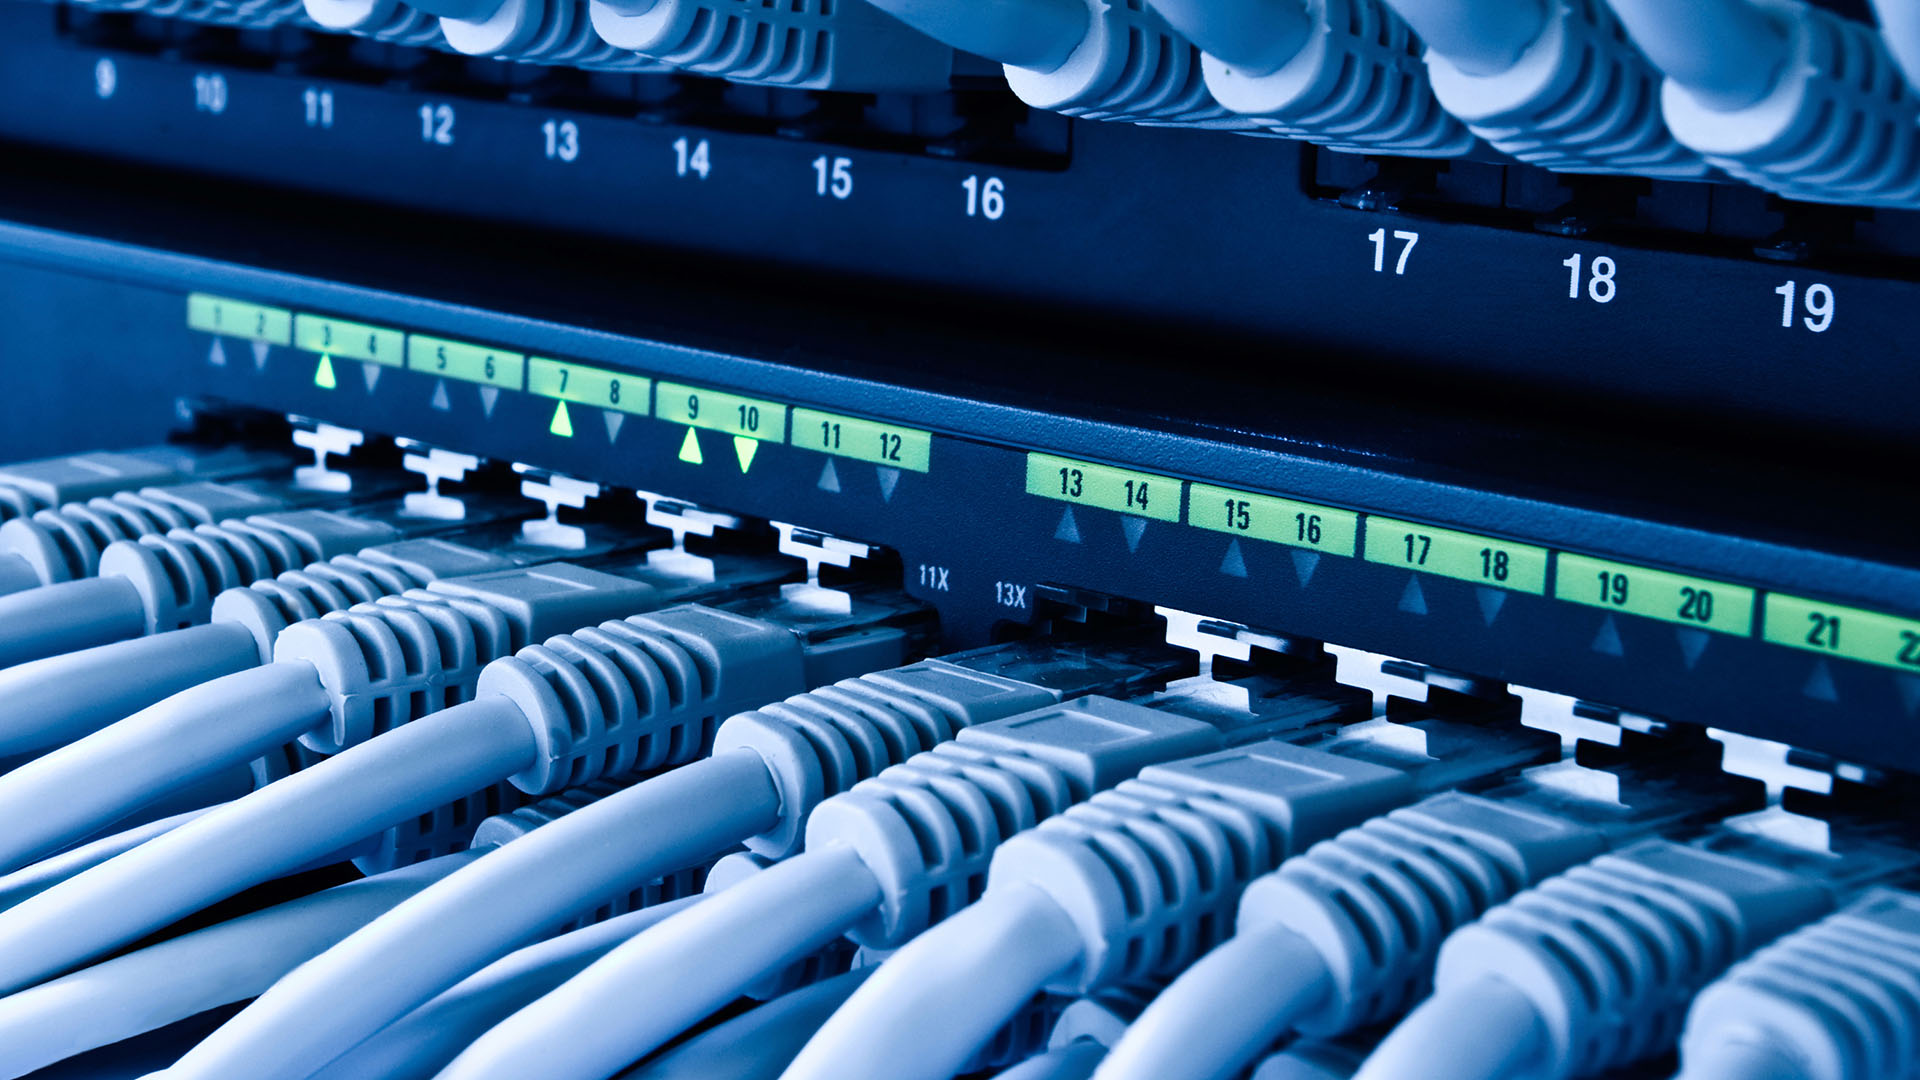 Lake Worth Florida Trusted Voice & Data Network Cabling Provider